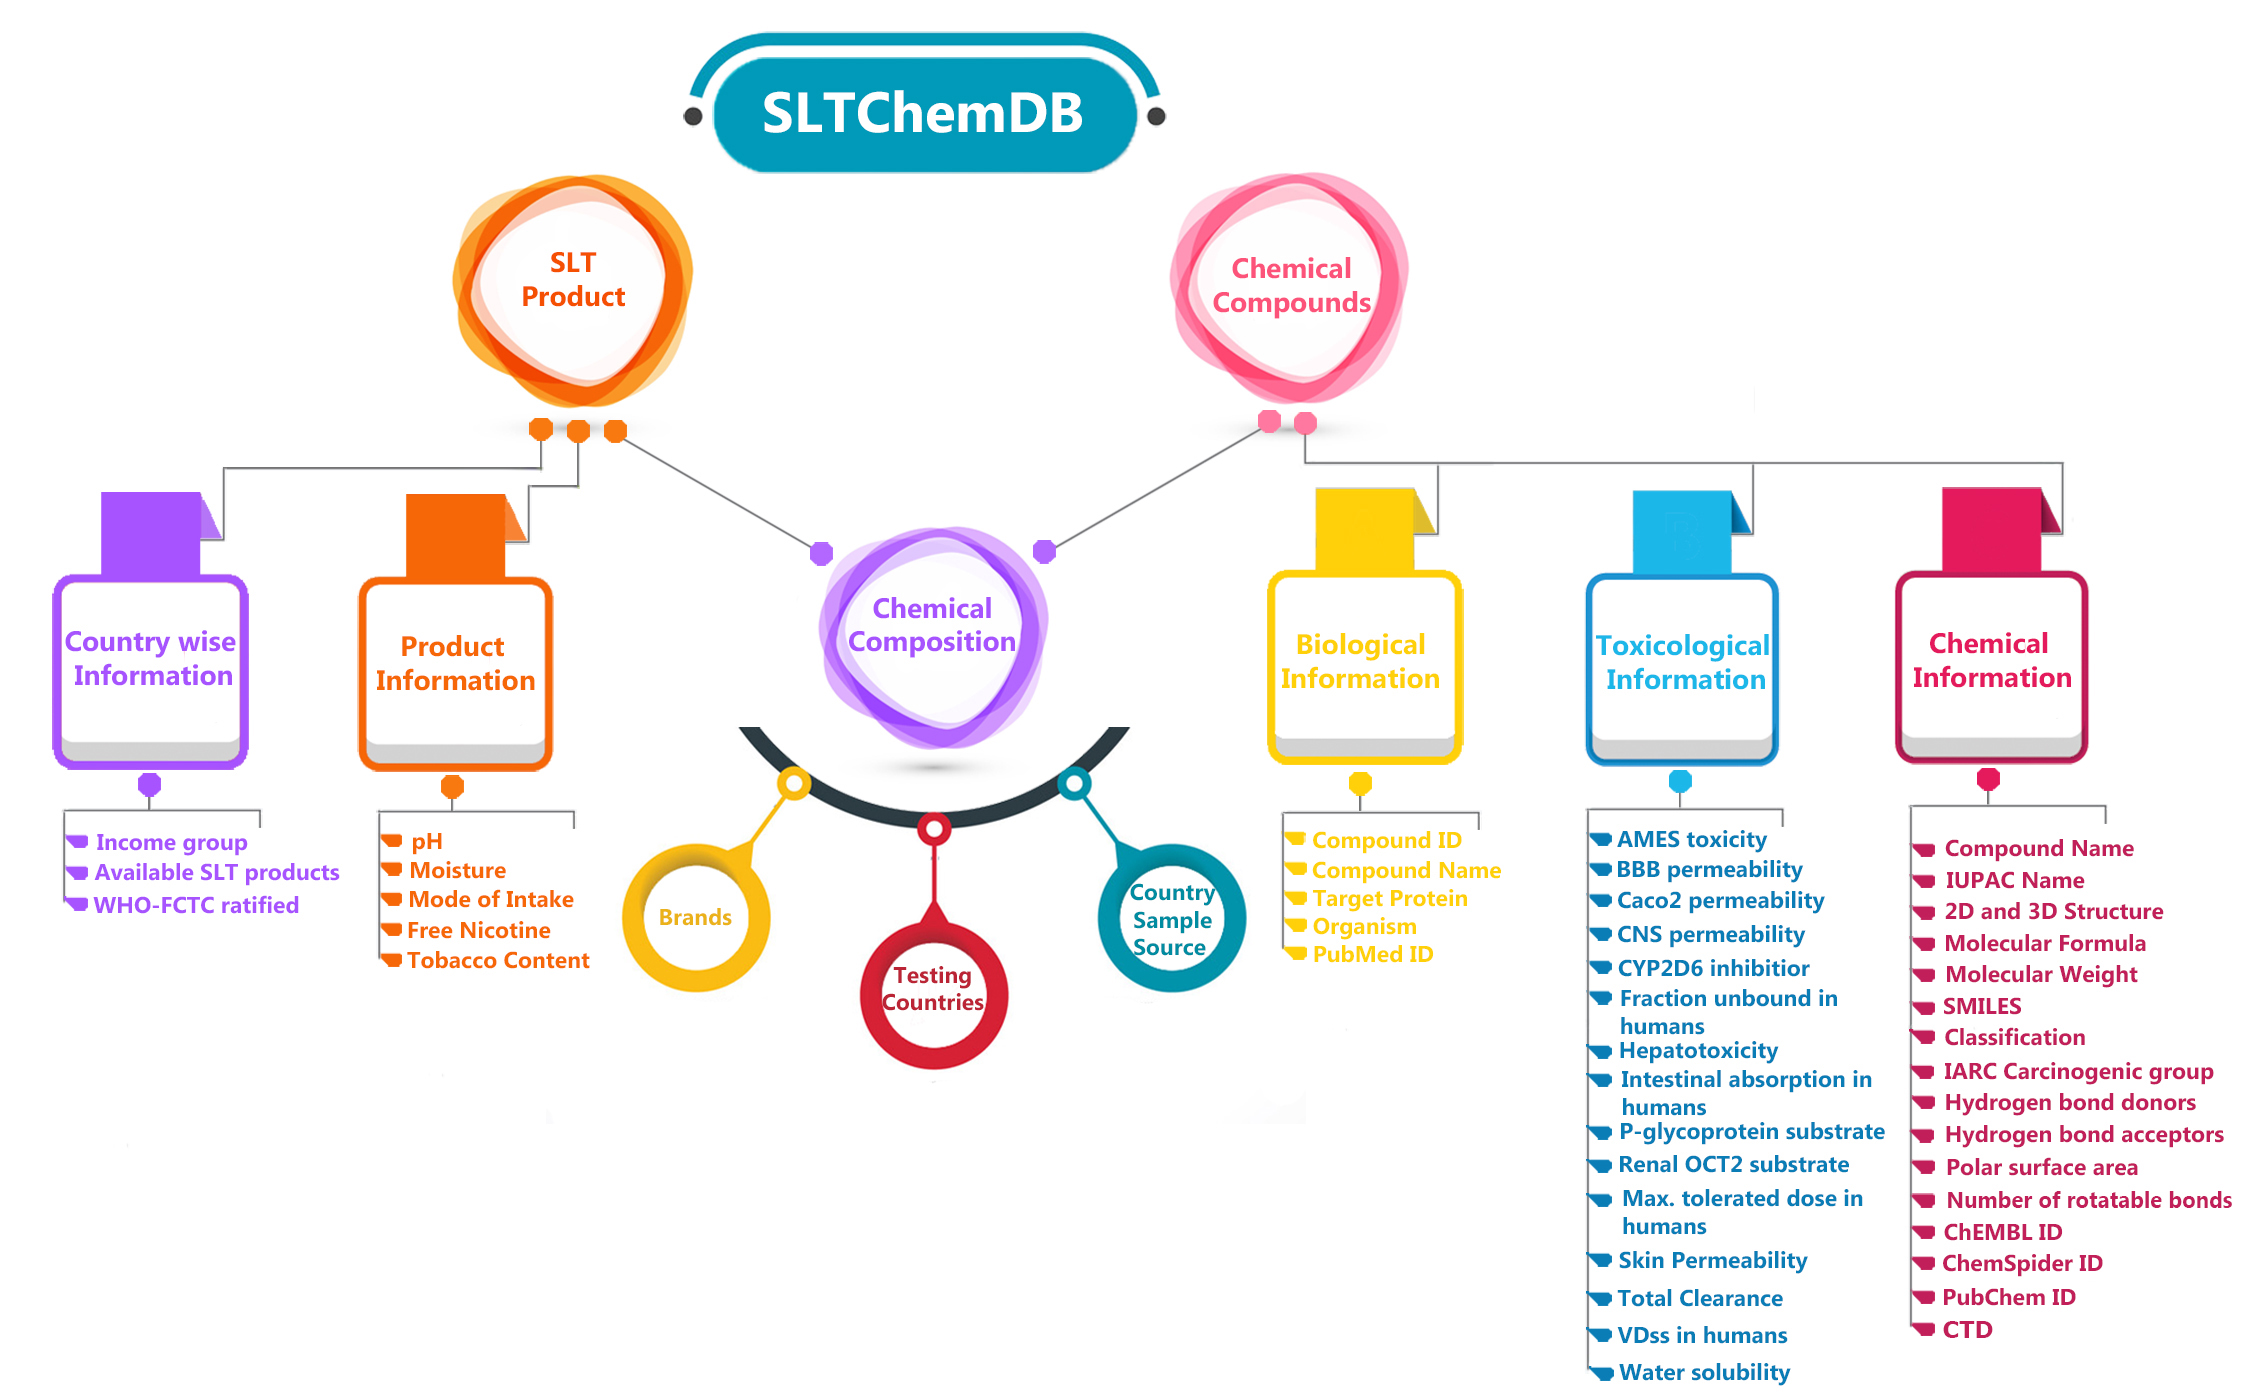 SLTChemDB: A database of Chemical Constitutents of Smokeless Tobacco